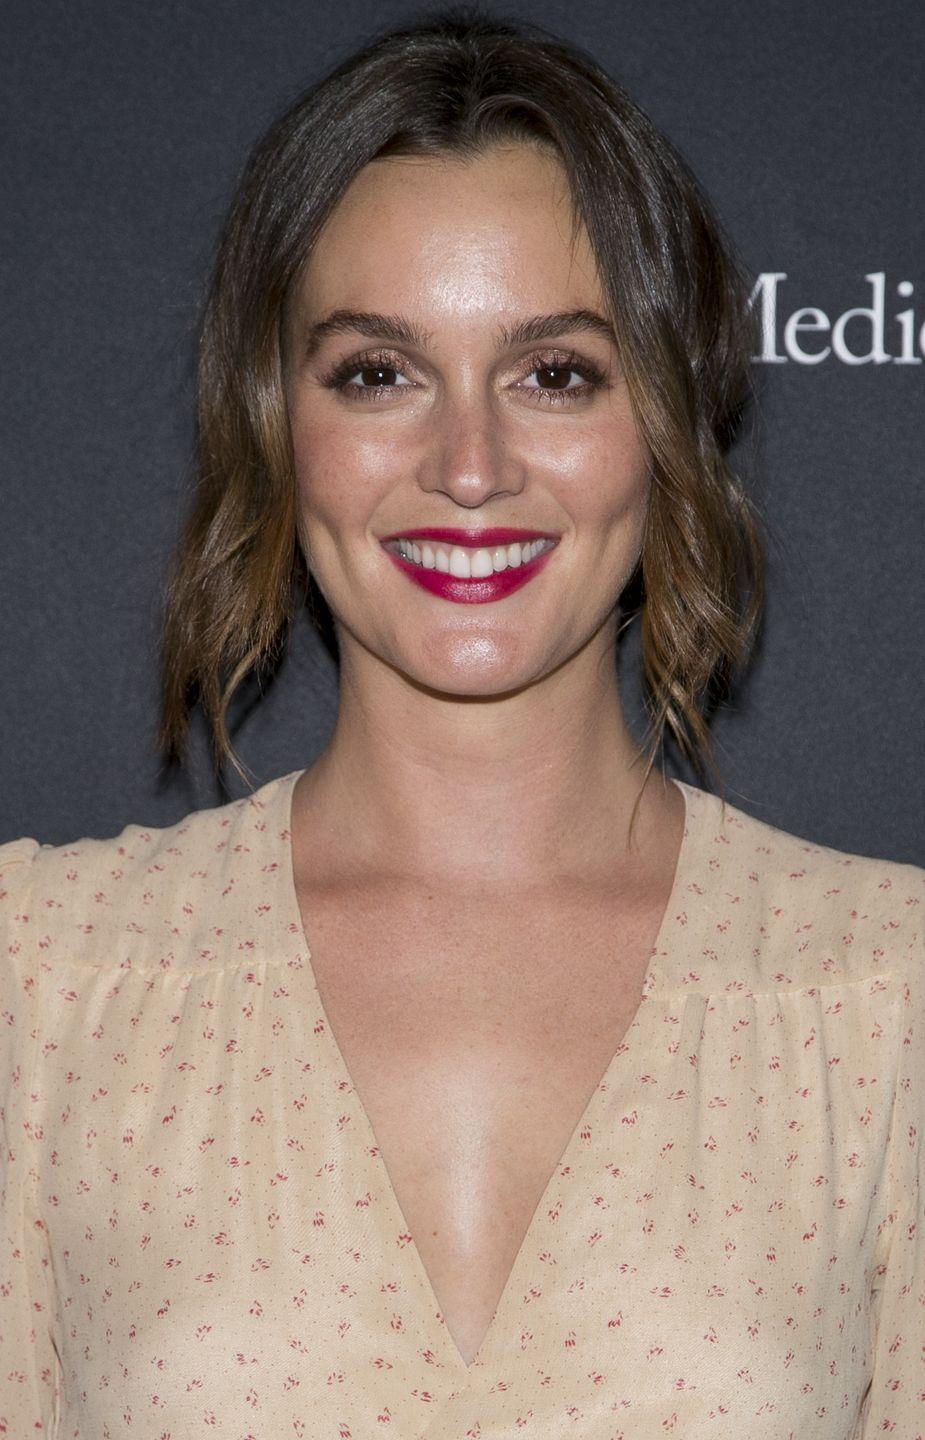 """<p>Subtle chestnut ombré locks look beautiful in a simple <a href=""""https://www.goodhousekeeping.com/beauty/hair/tips/g1800/celebrity-hairstyles-updo/"""" rel=""""nofollow noopener"""" target=""""_blank"""" data-ylk=""""slk:updo"""" class=""""link rapid-noclick-resp"""">updo</a>. Take a cue from <strong>Leighton Meester</strong> and leave the front pieces out in loose curls.</p>"""